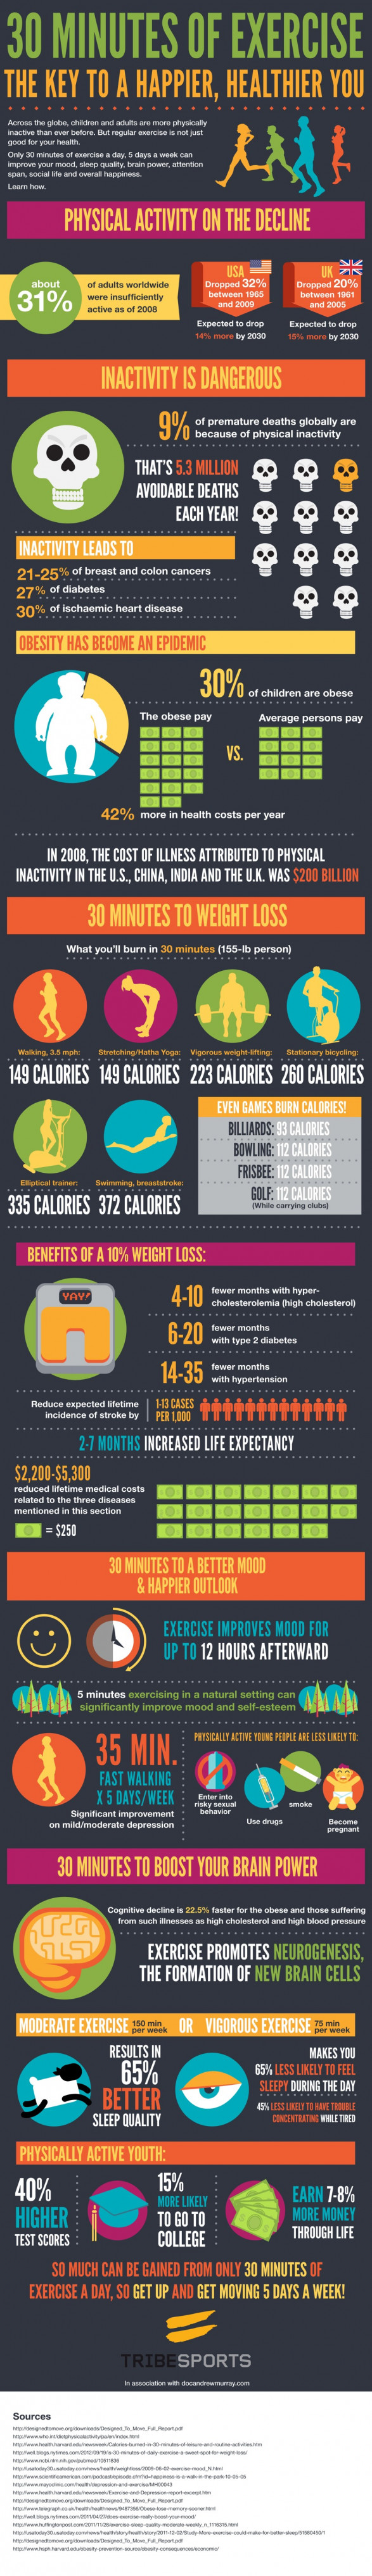 30 minutes to a longer life: How exercise reduces your risk of premature death